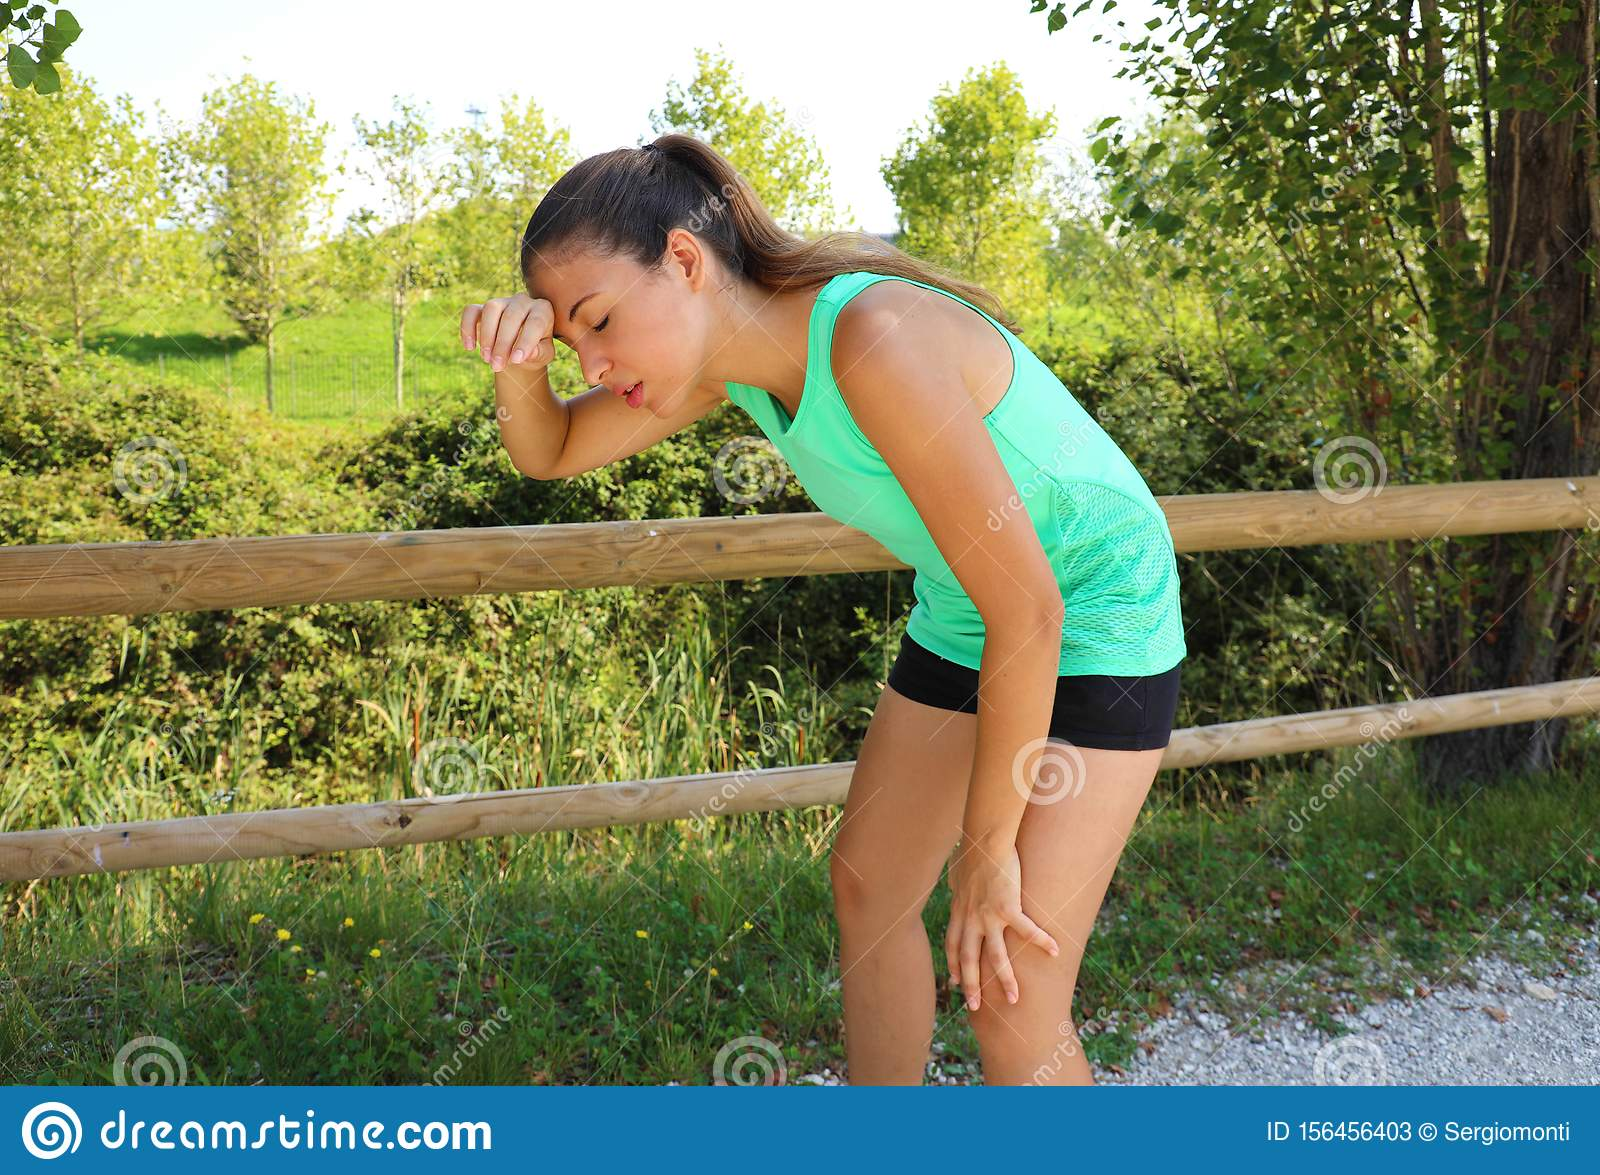 Woman bent over in exhaustion and catching her breath after a running session